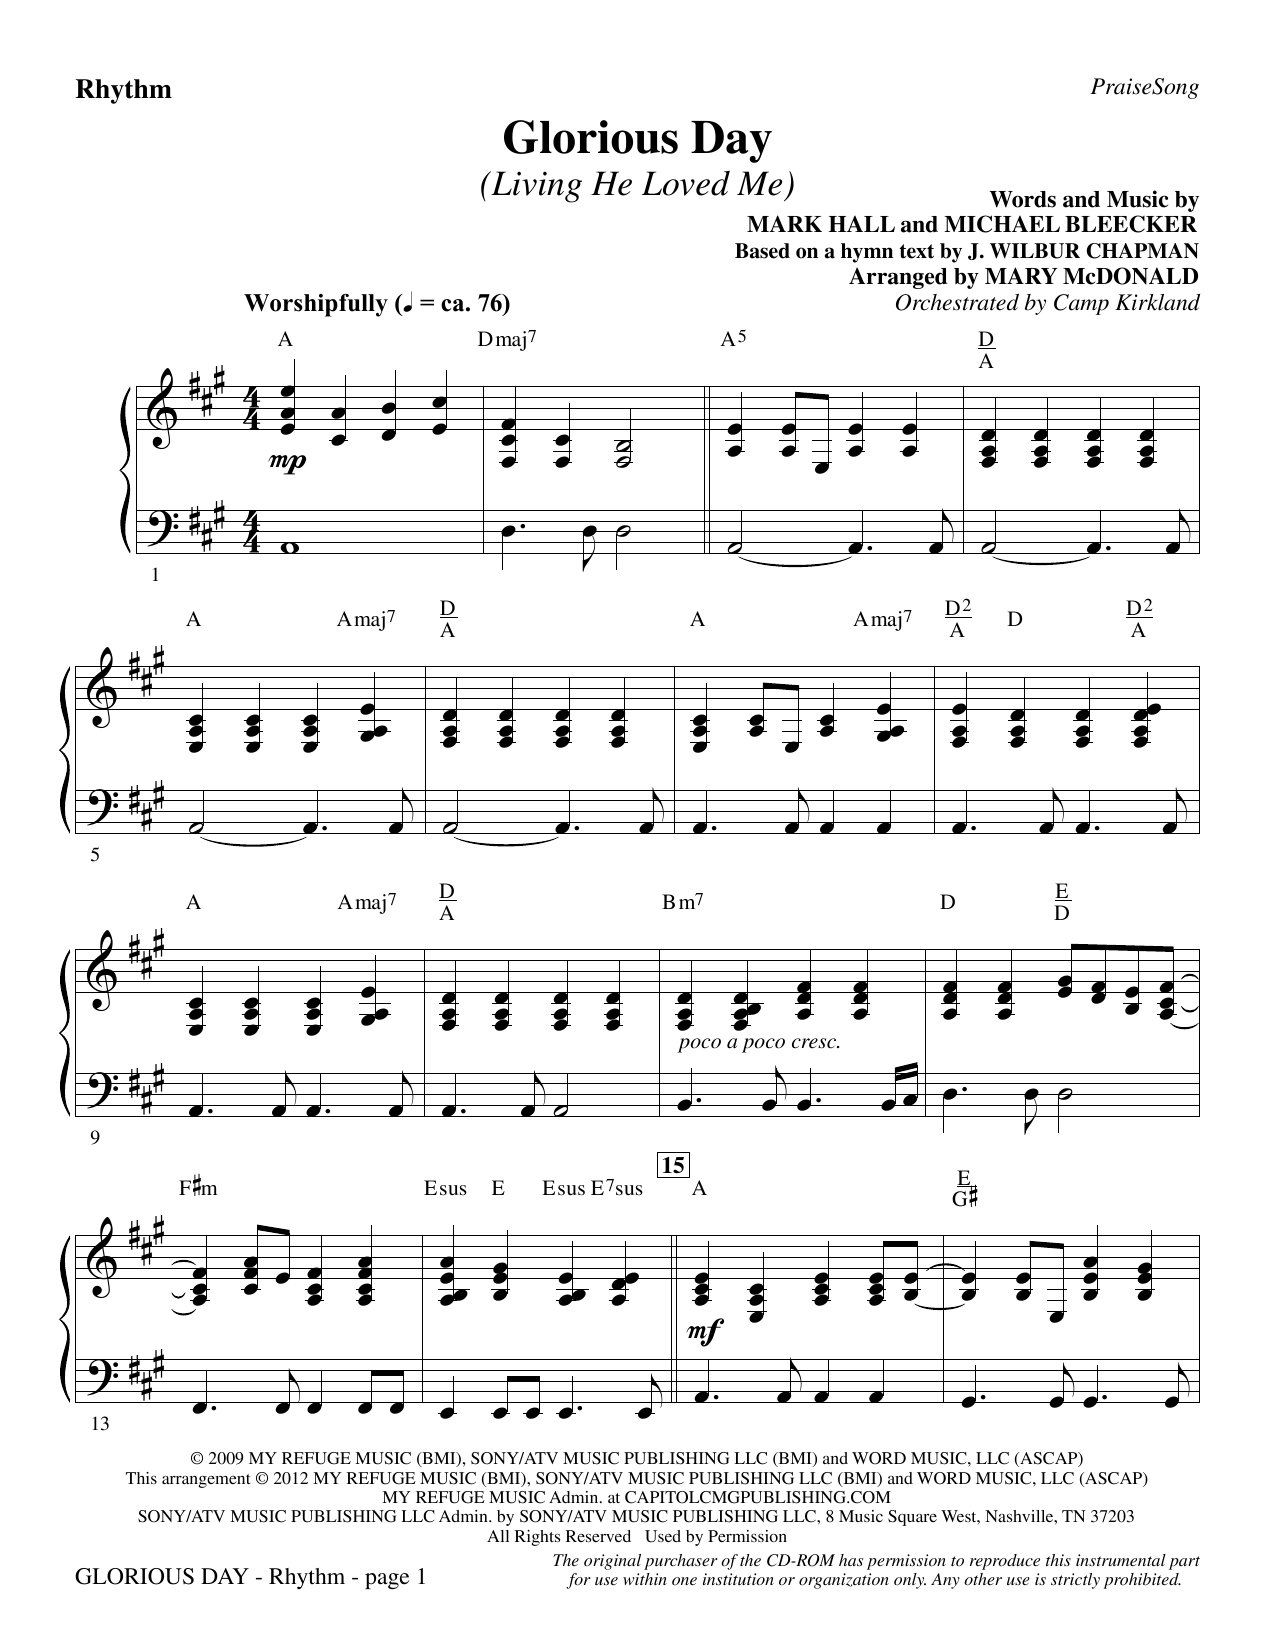 Glorious Day (Living He Loved Me) - Rhythm Sheet Music